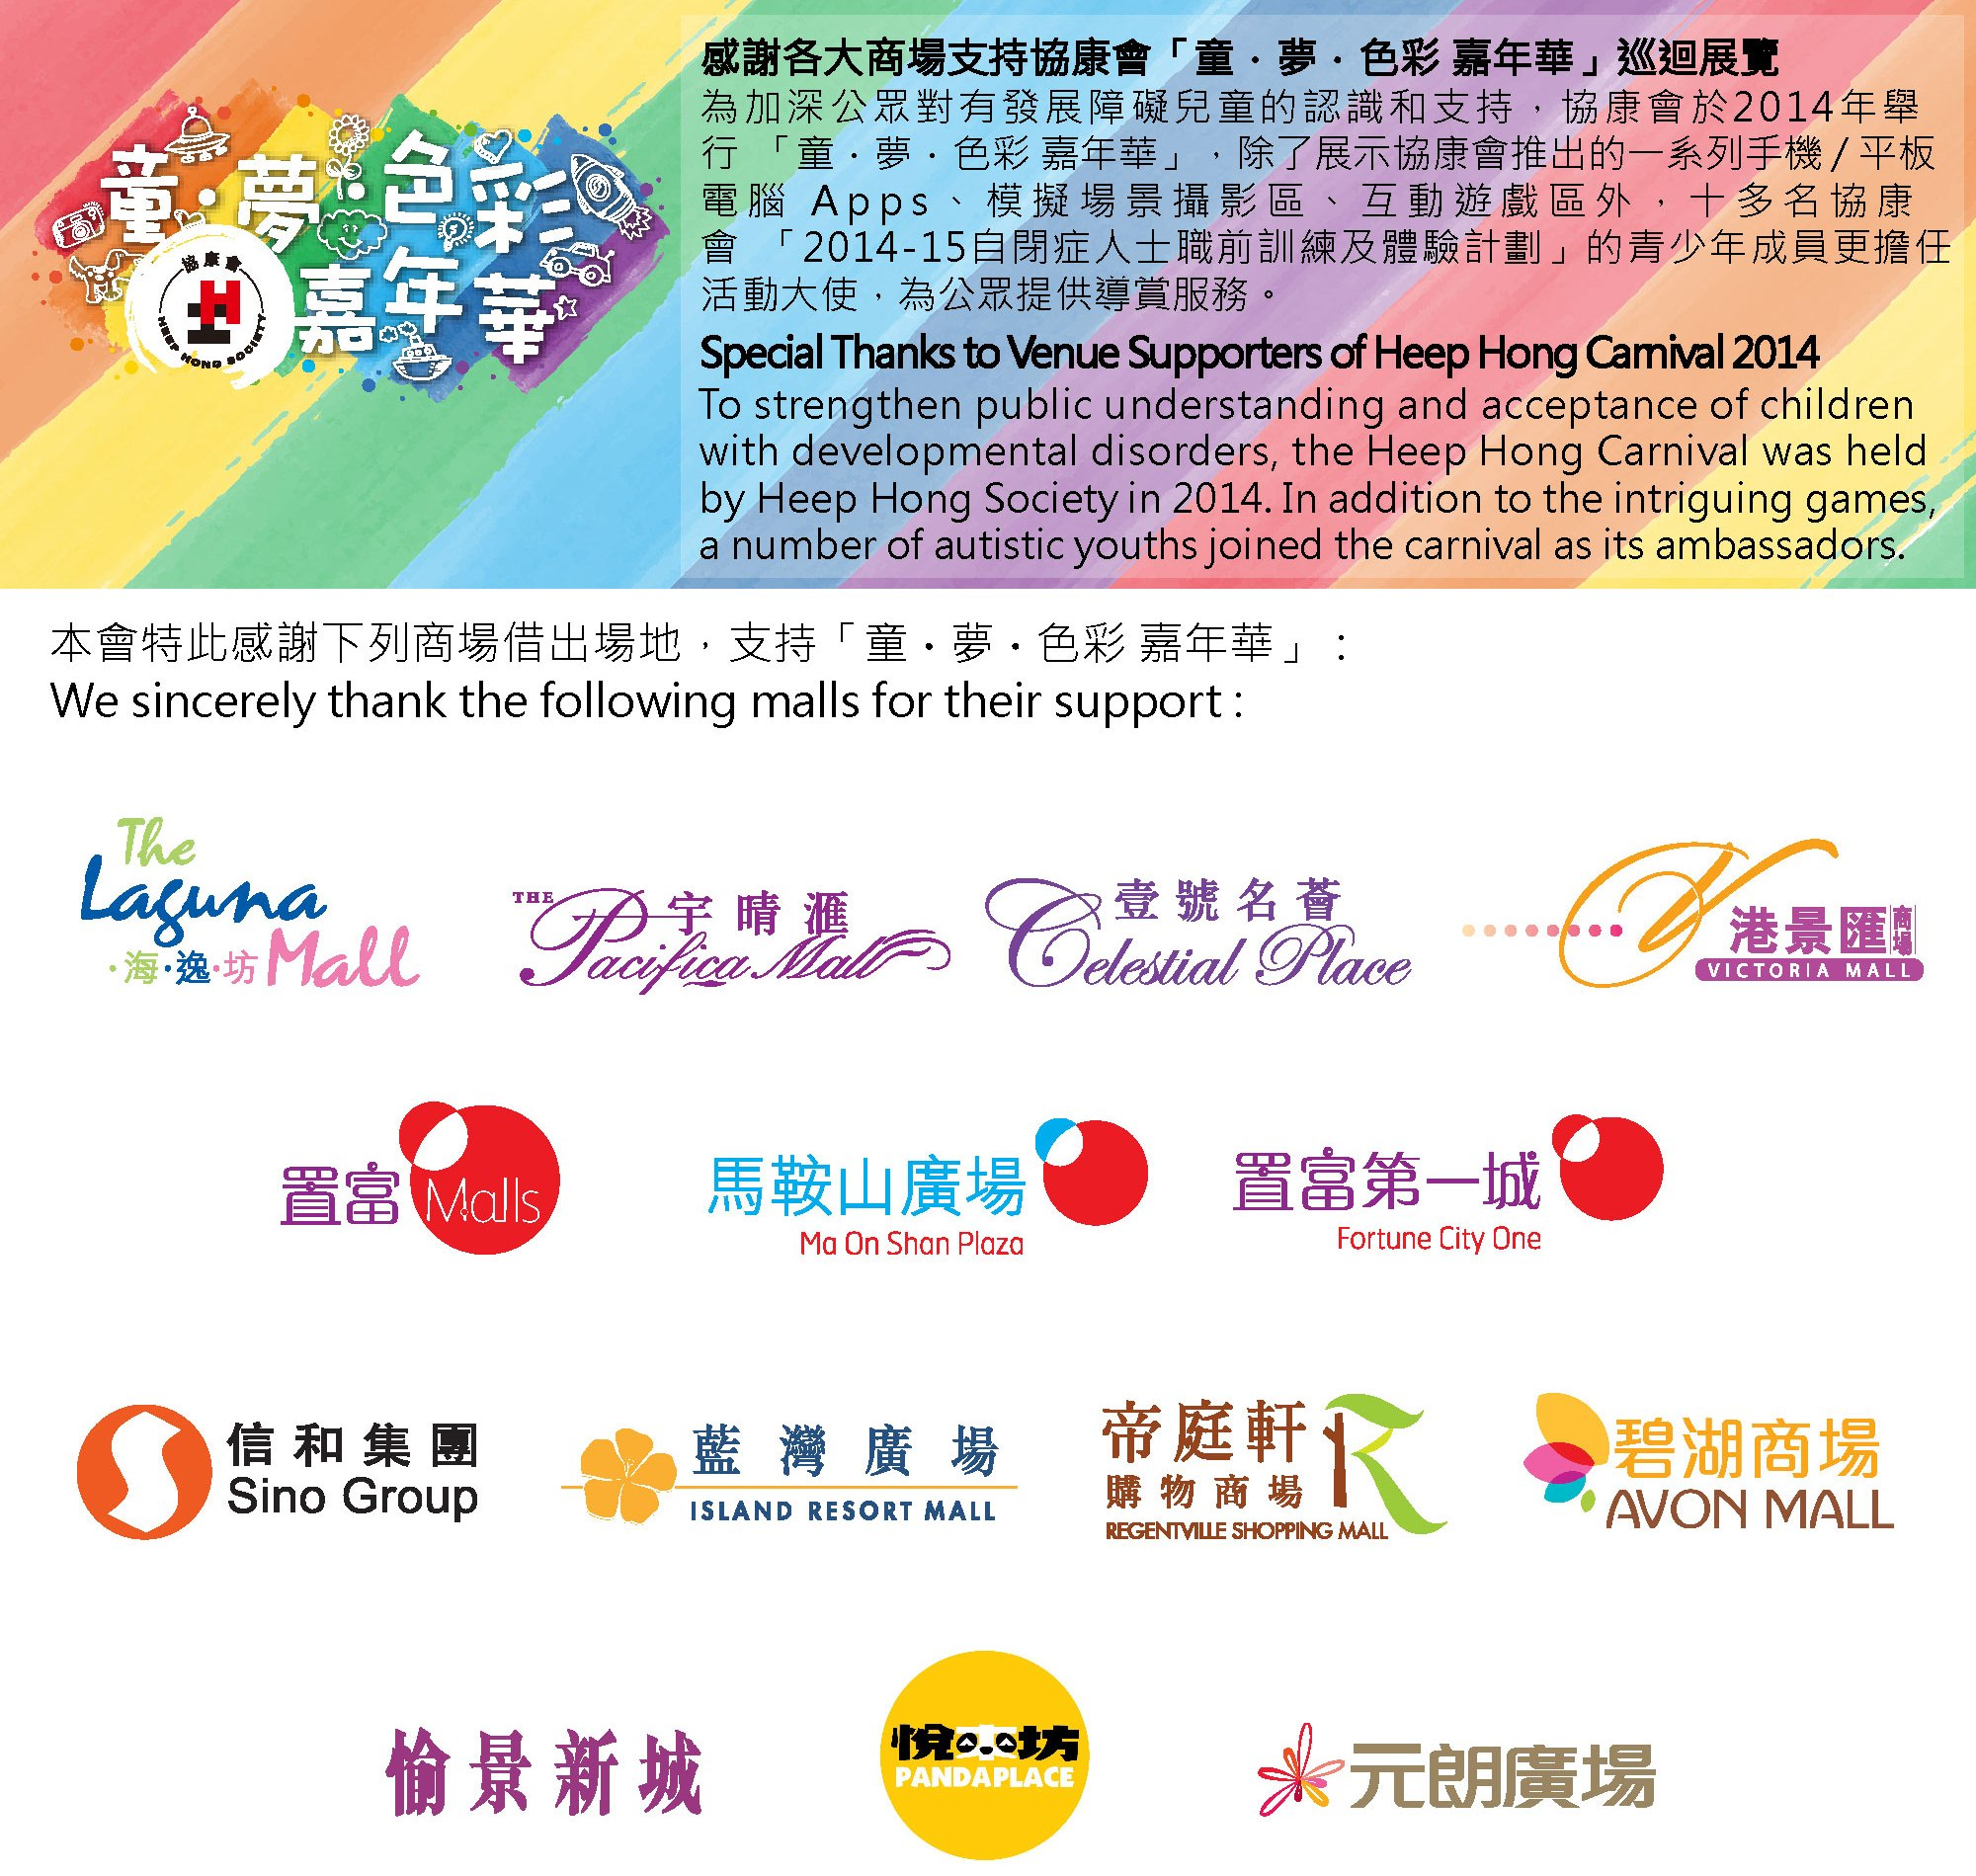 Special Thanks to Venue Supporters of Heep Hong Carnival 2014